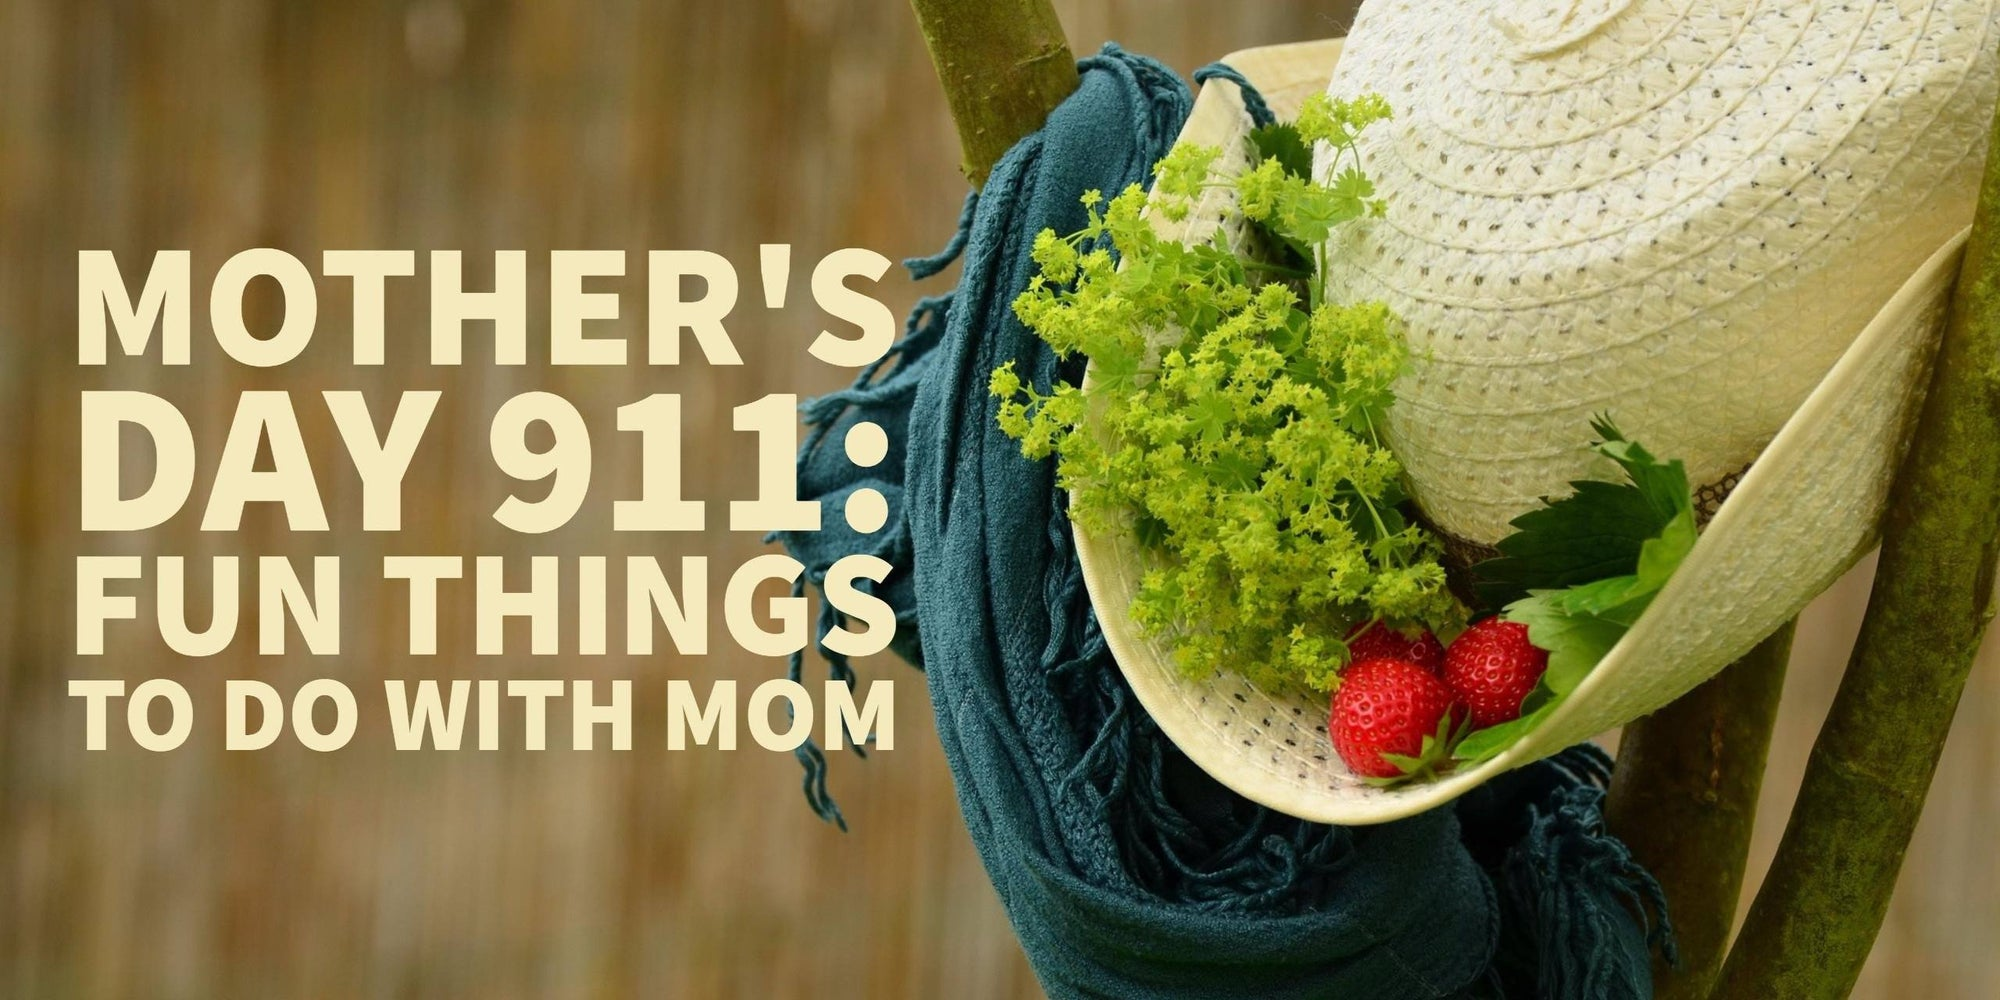 What to Do with Mom on Mother's Day